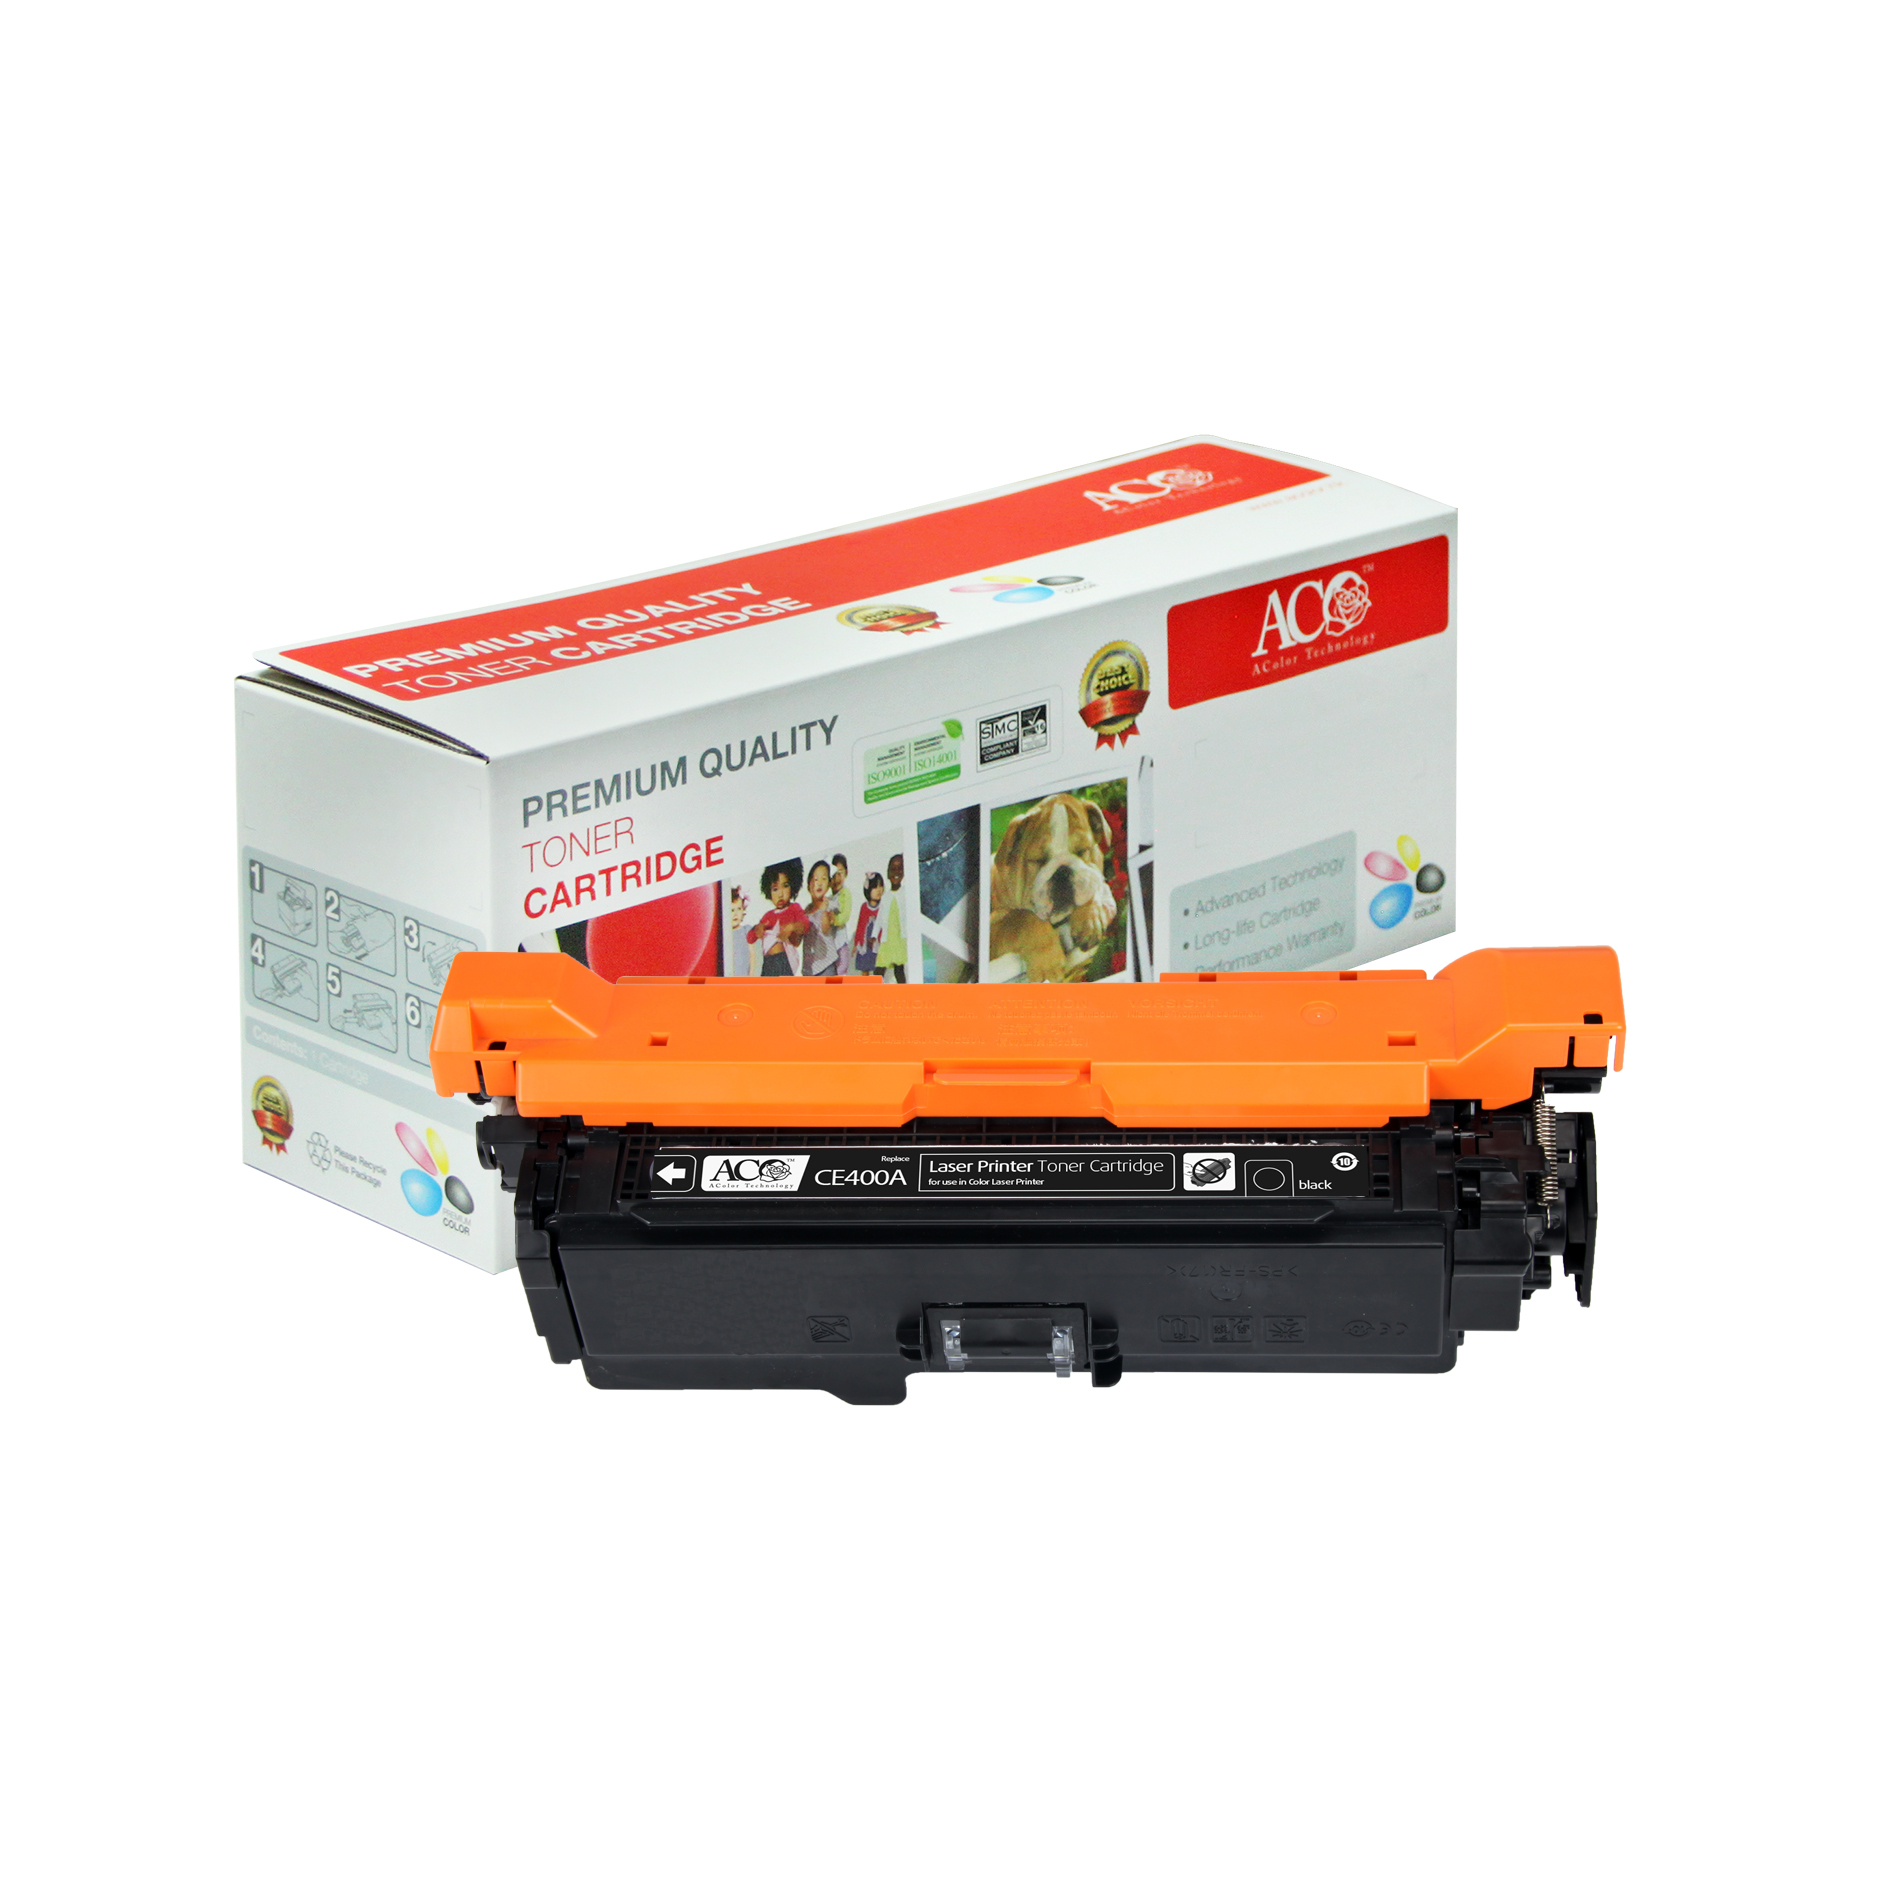 Compatible Color Toner Cartridge for HP CE400A CE401A CE402A CE403A(Enterprise 500 Color M551n 525f 525dn 570 575f)